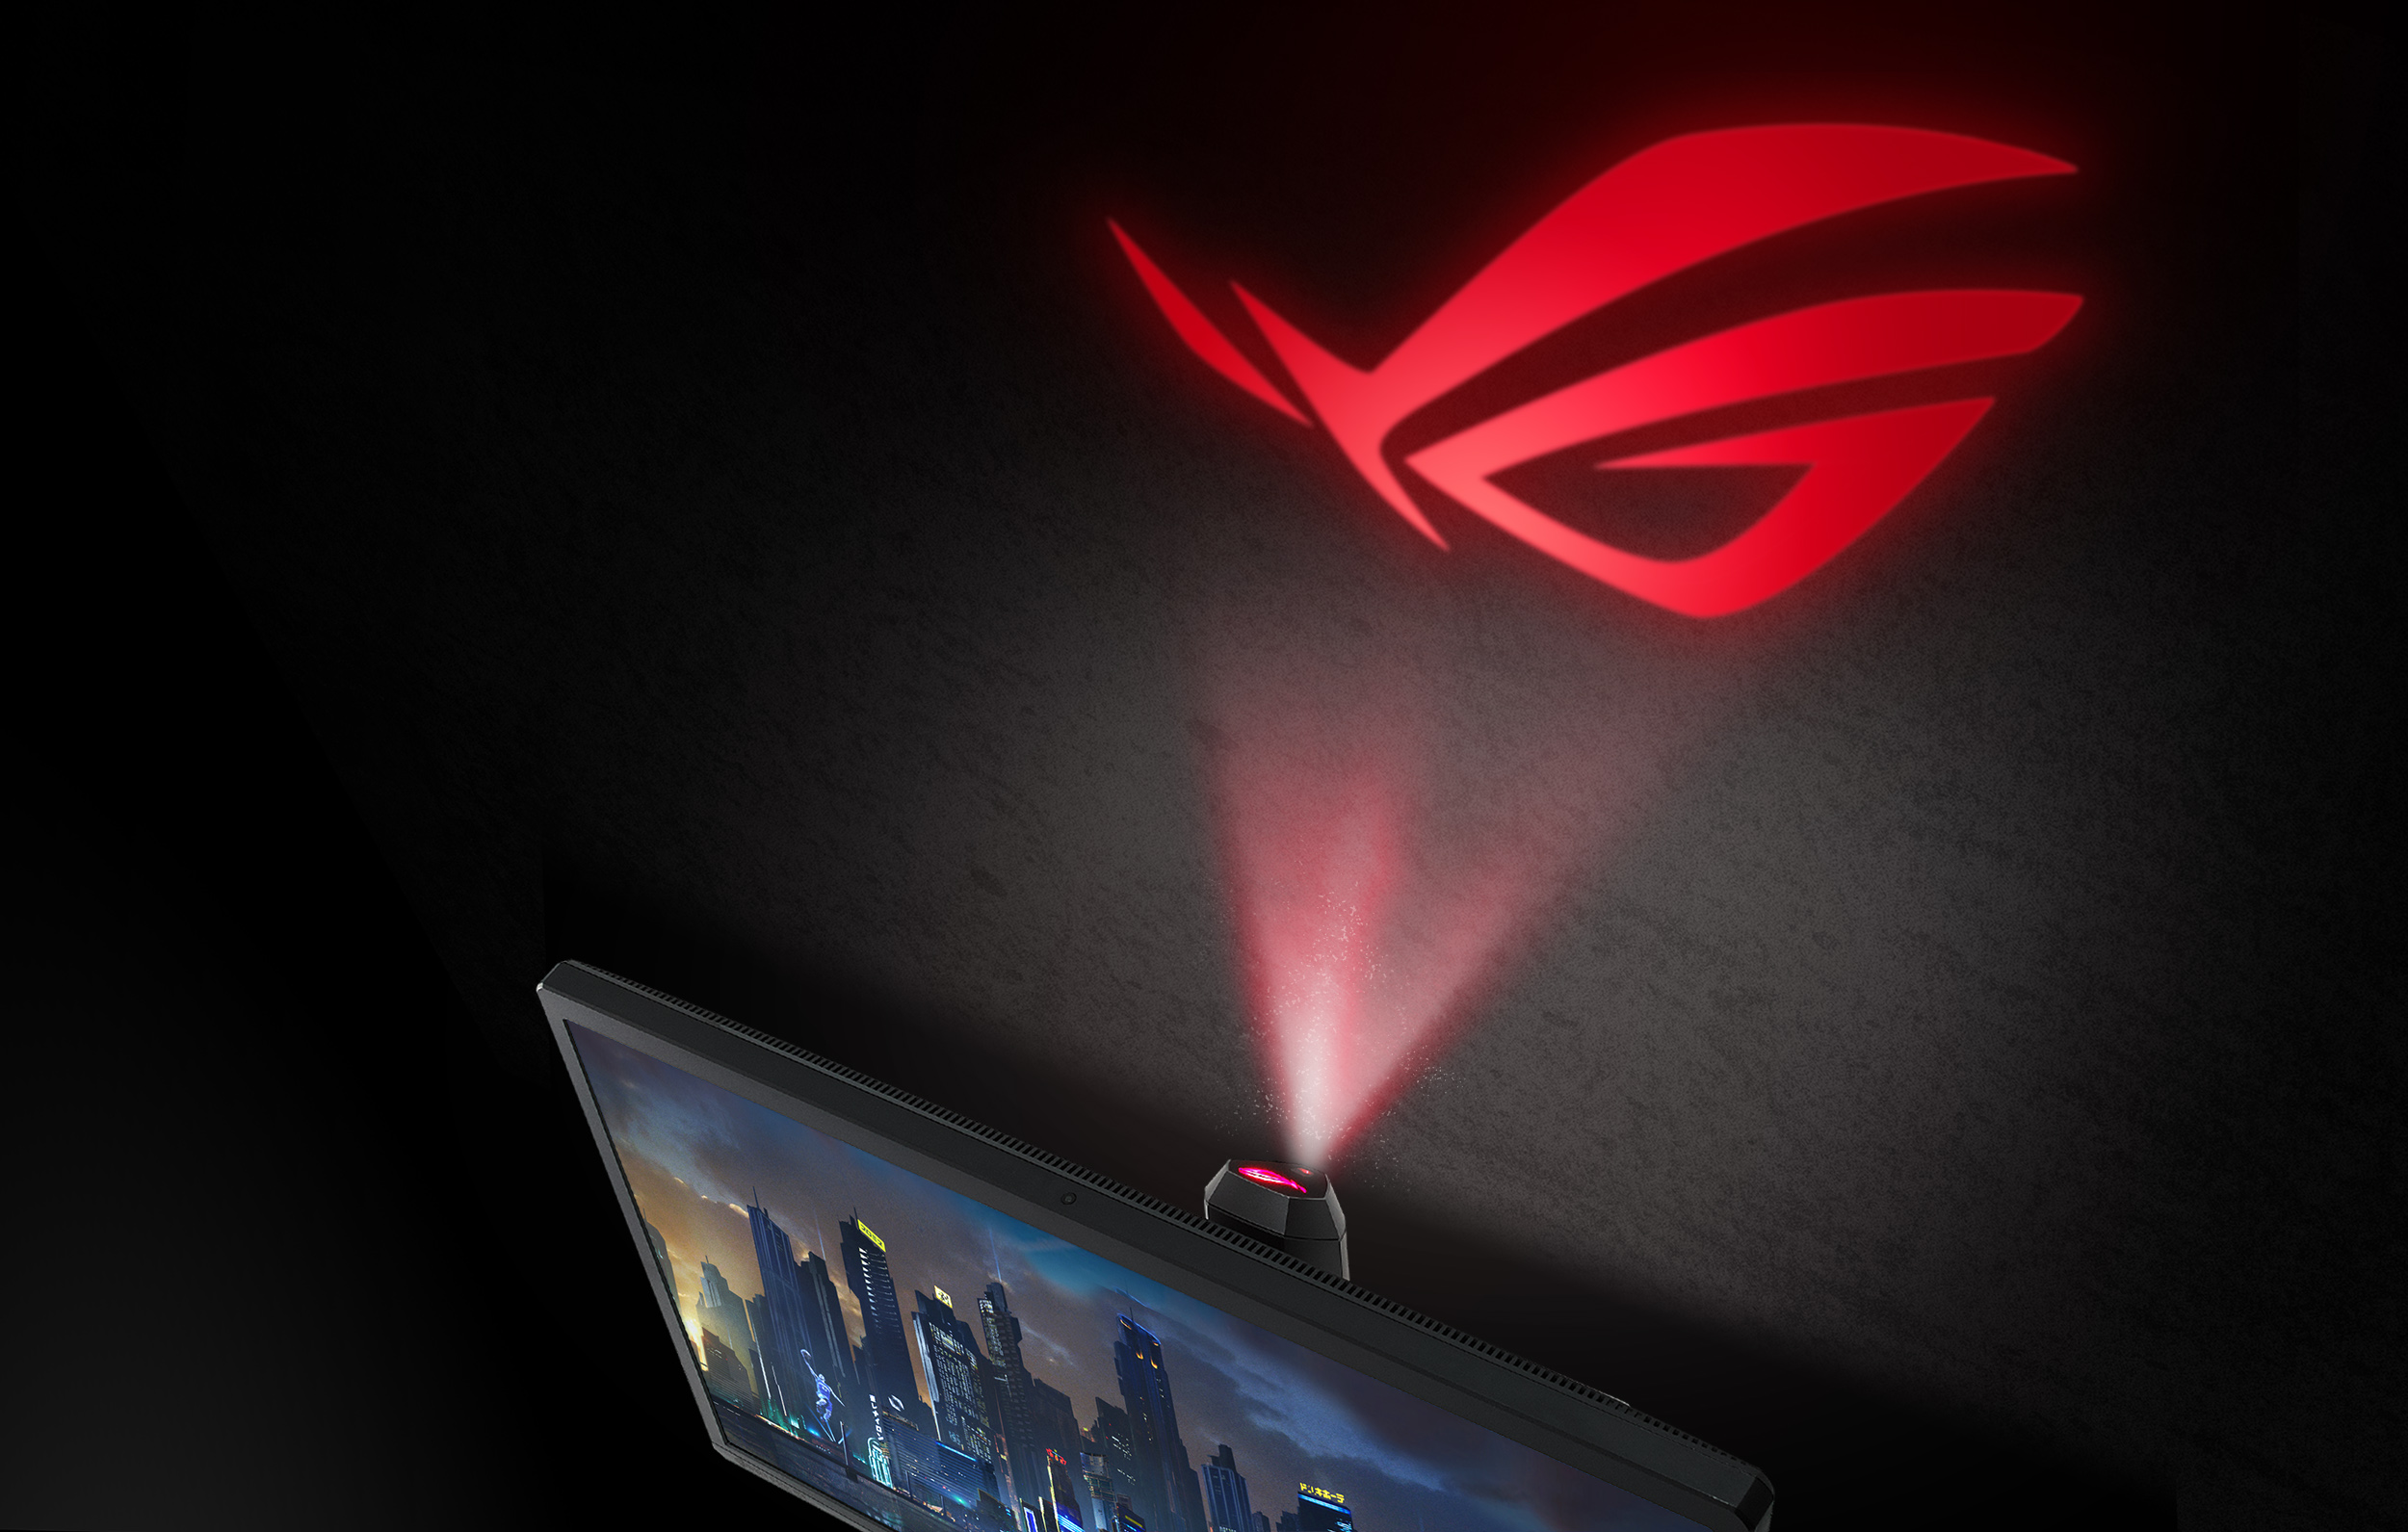 ASUS Launches ROG Swift PG27UQ 4K 144Hz NVIDIA G-SYNC HDR